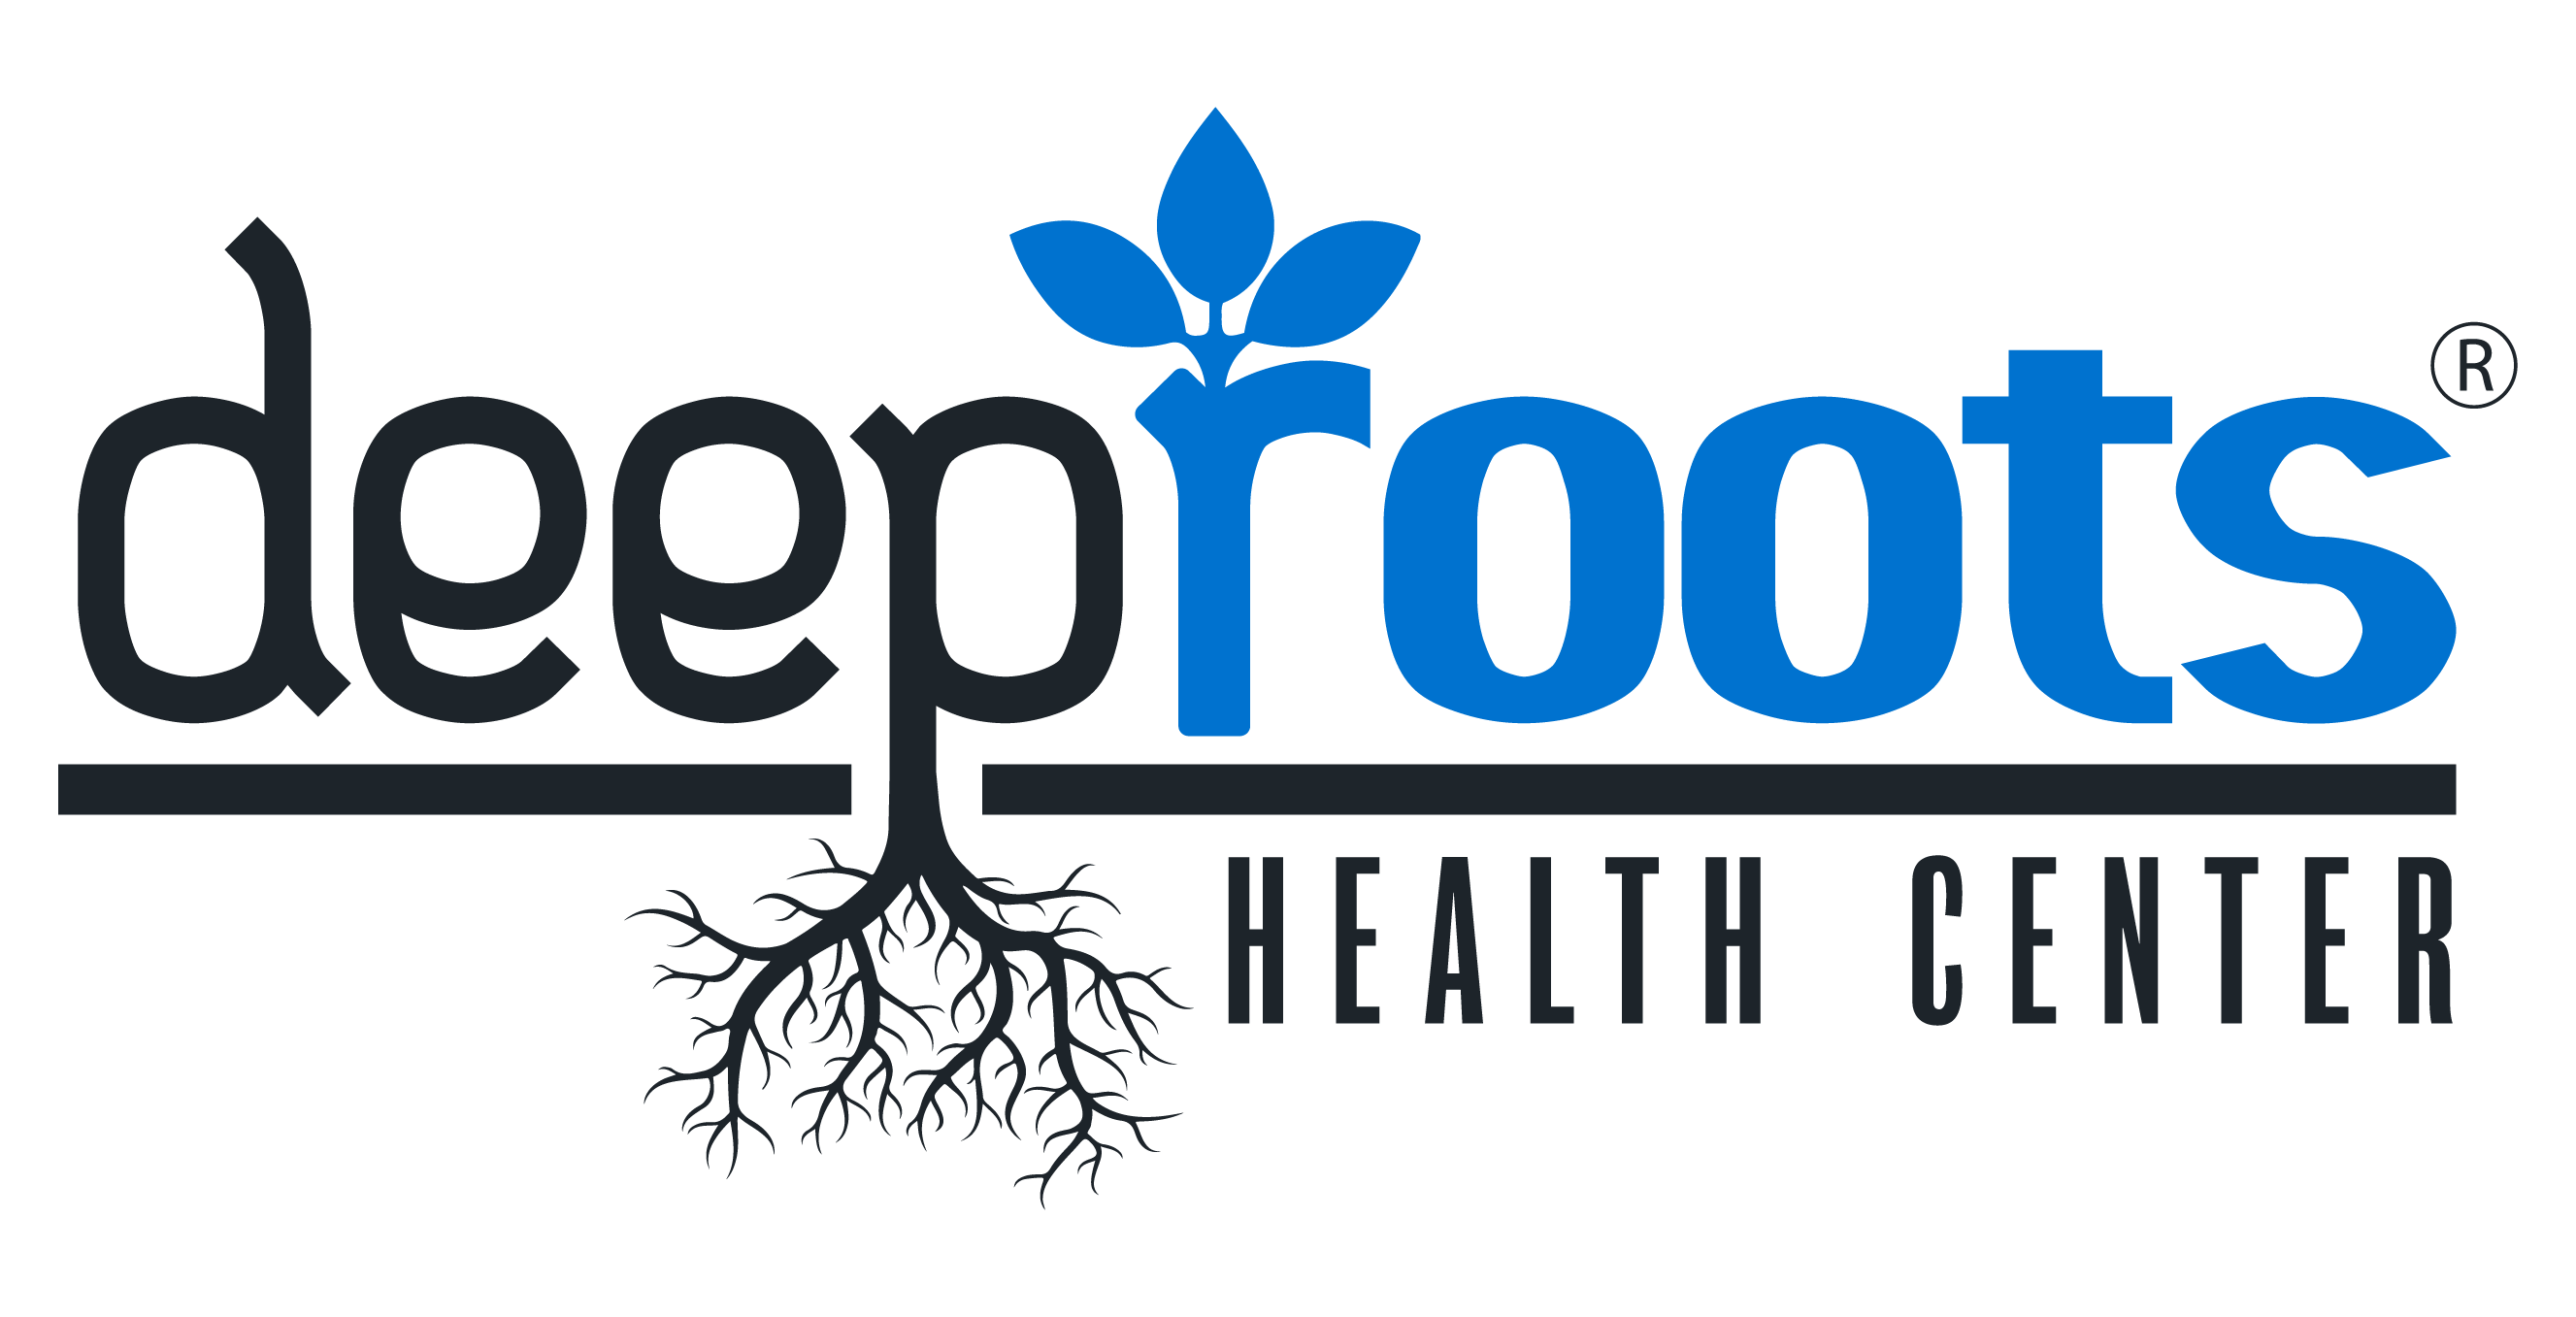 Deep Roots Chiropractic Health Center Continues to Transform Patients' Lives and Receives Another Uplifting Five-Star Customer Review